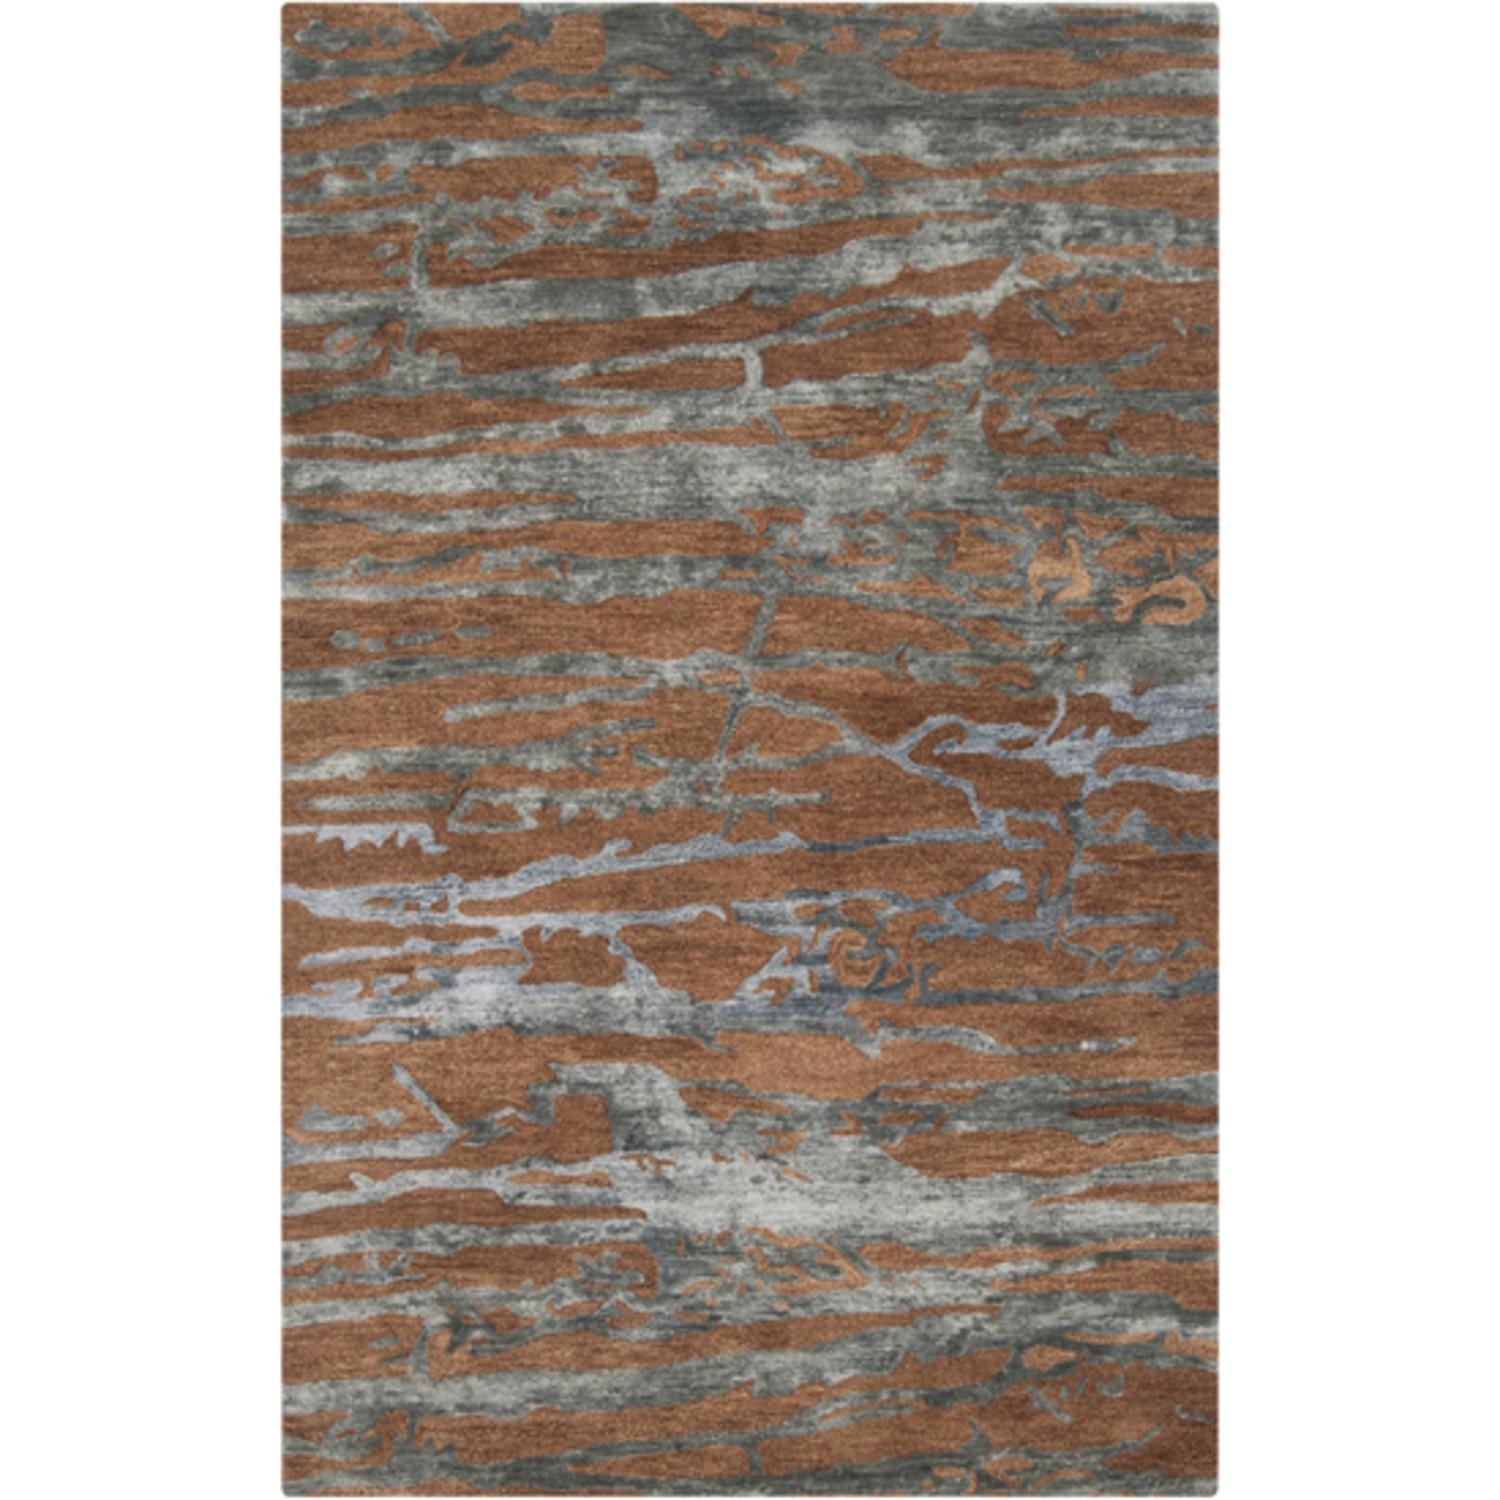 2' x 3' Grotto Mountain Rock Sepia and Slate Blue Wool Area Throw Rug